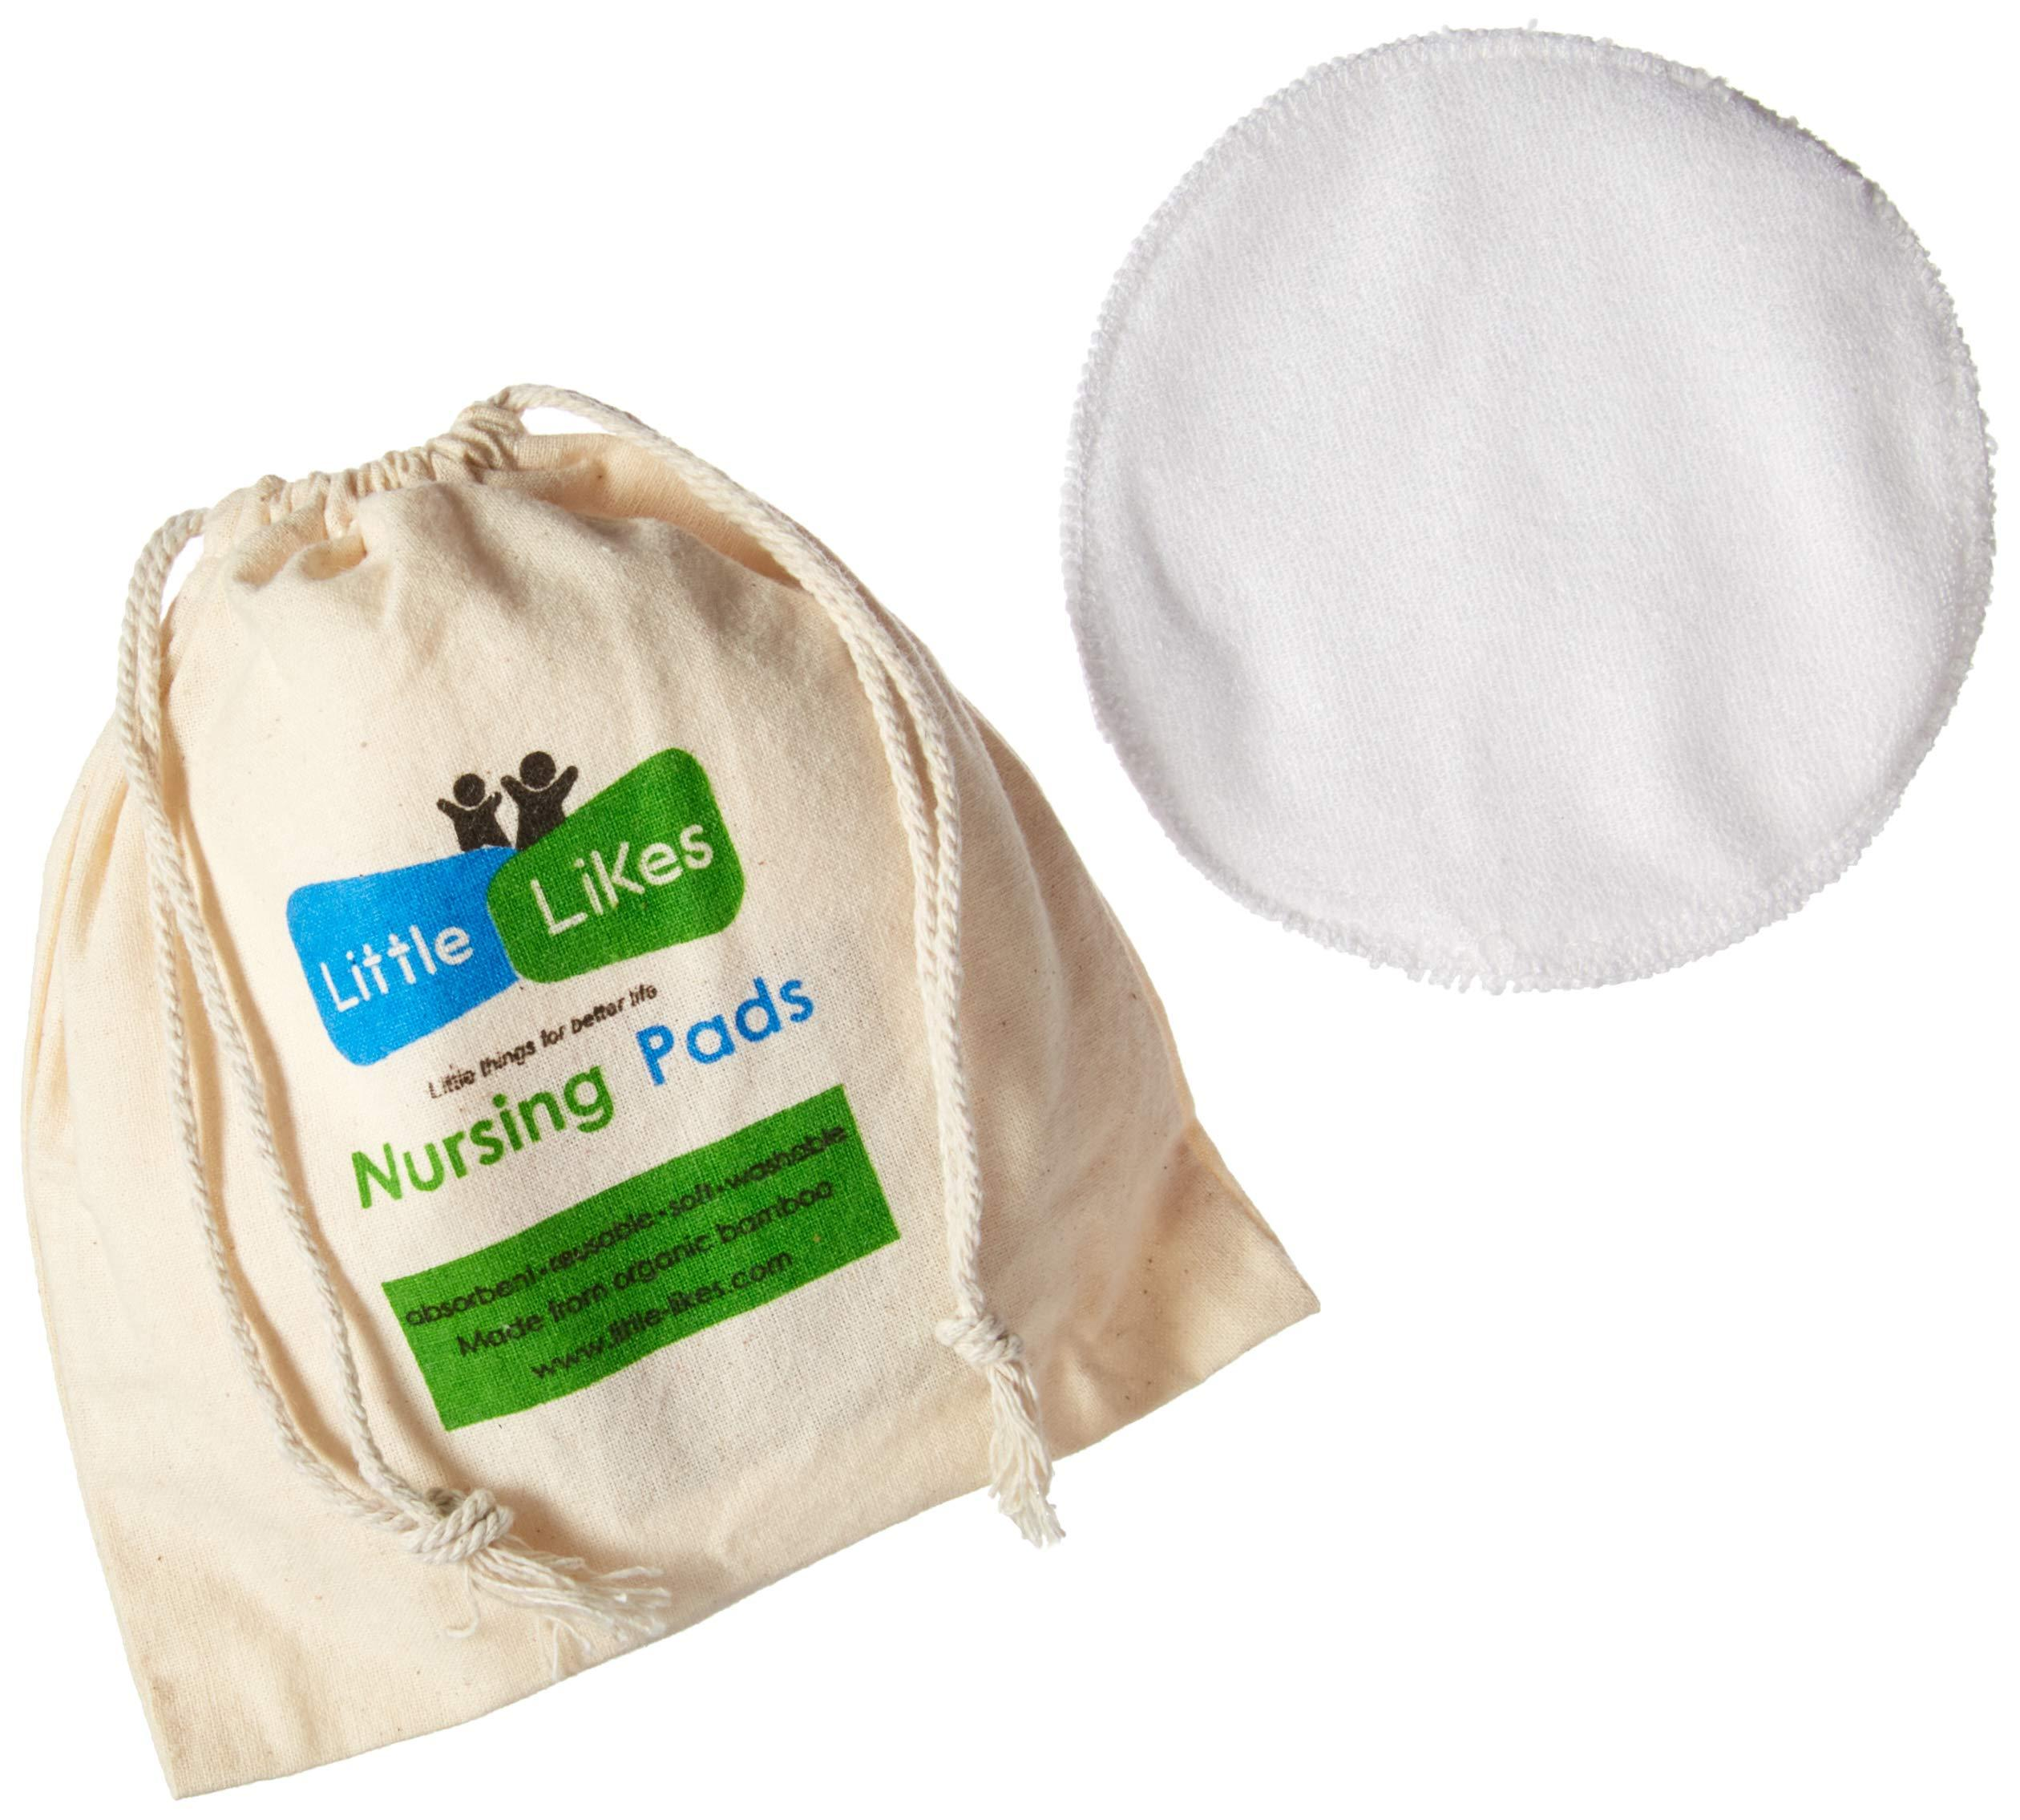 Organic Nursing Pads (8 Pack) Reusable Bamboo Breast Pads, Bra Pads, Leakproof, Ultra Soft, Waterproof,... by Little-Likes